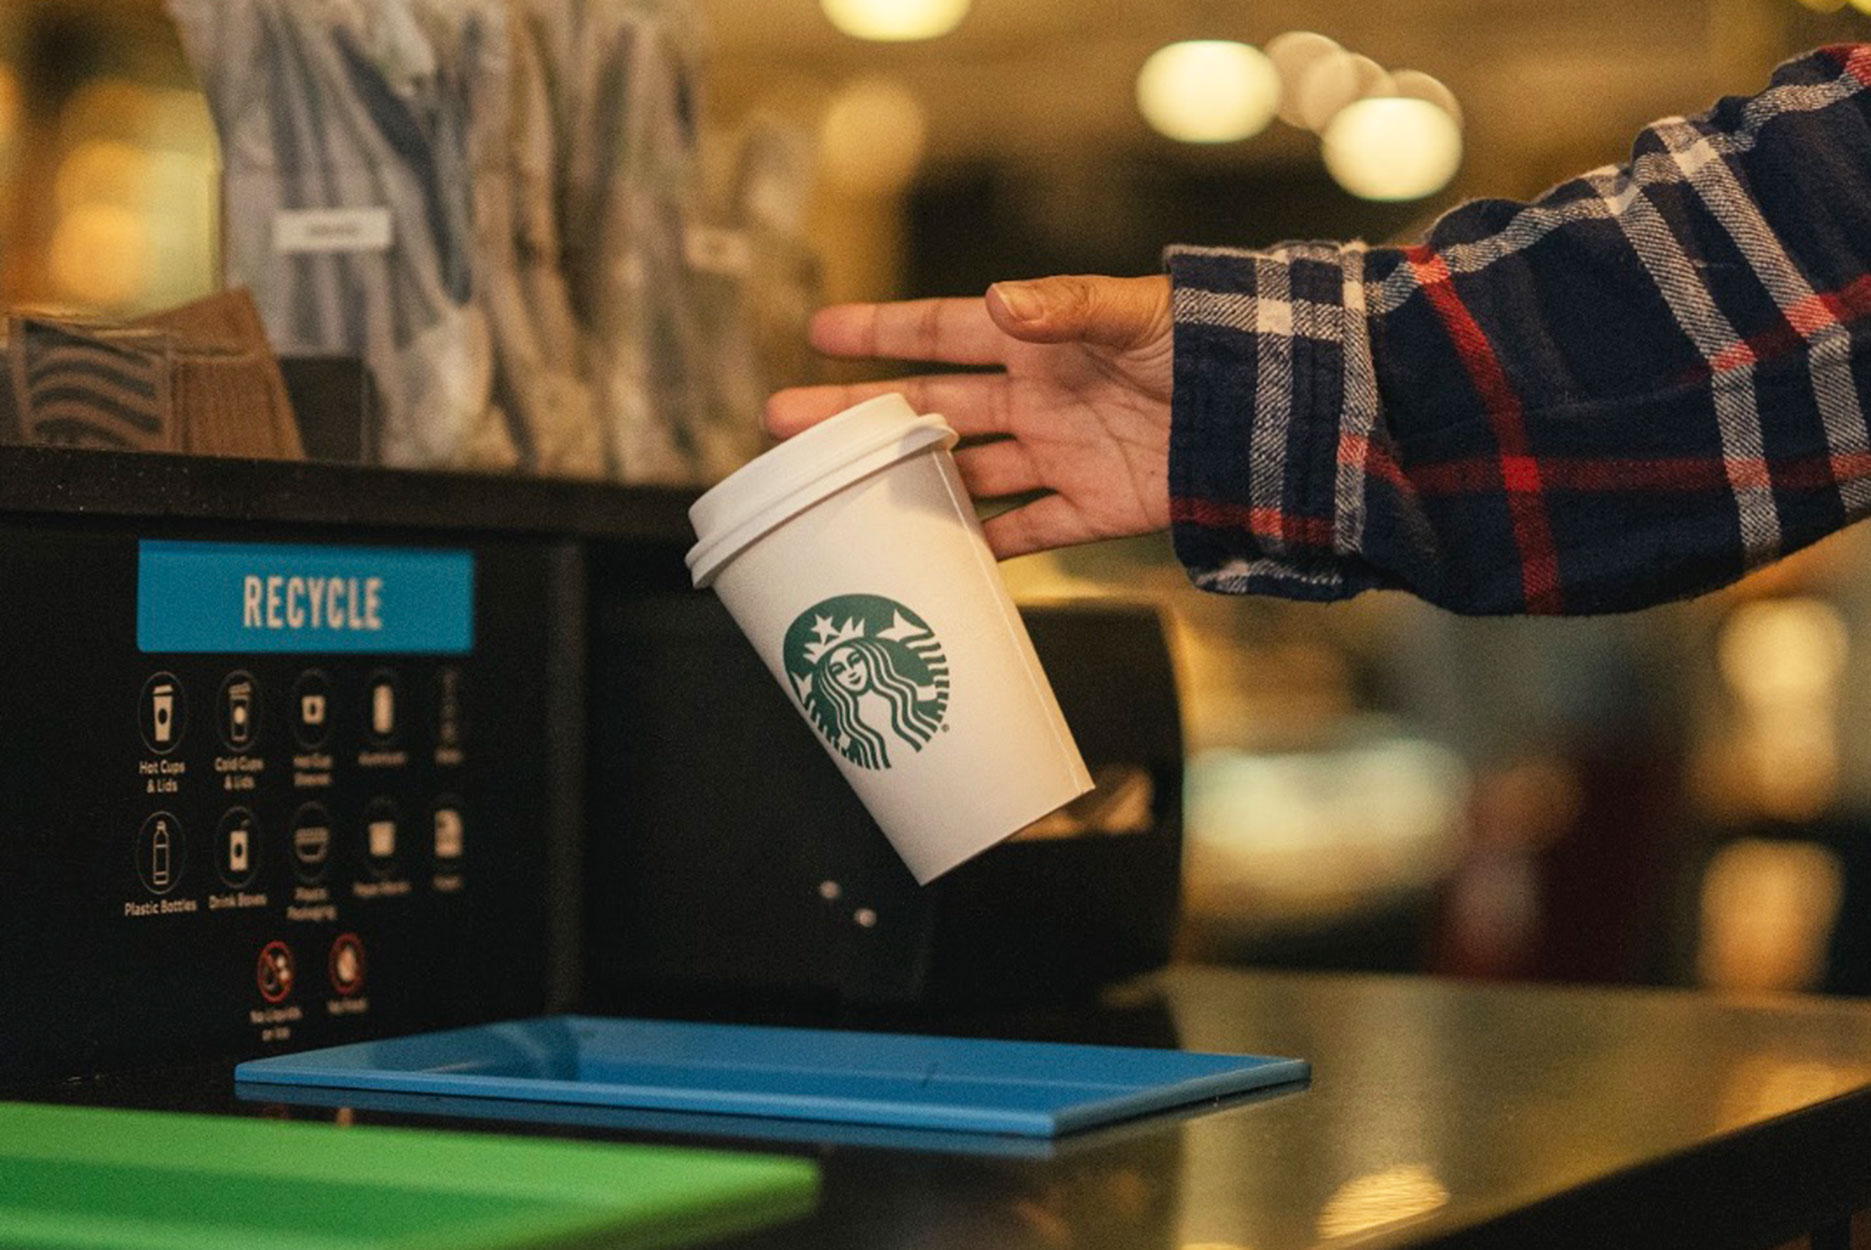 A customer recycles the new nextgen cup from Starbucks